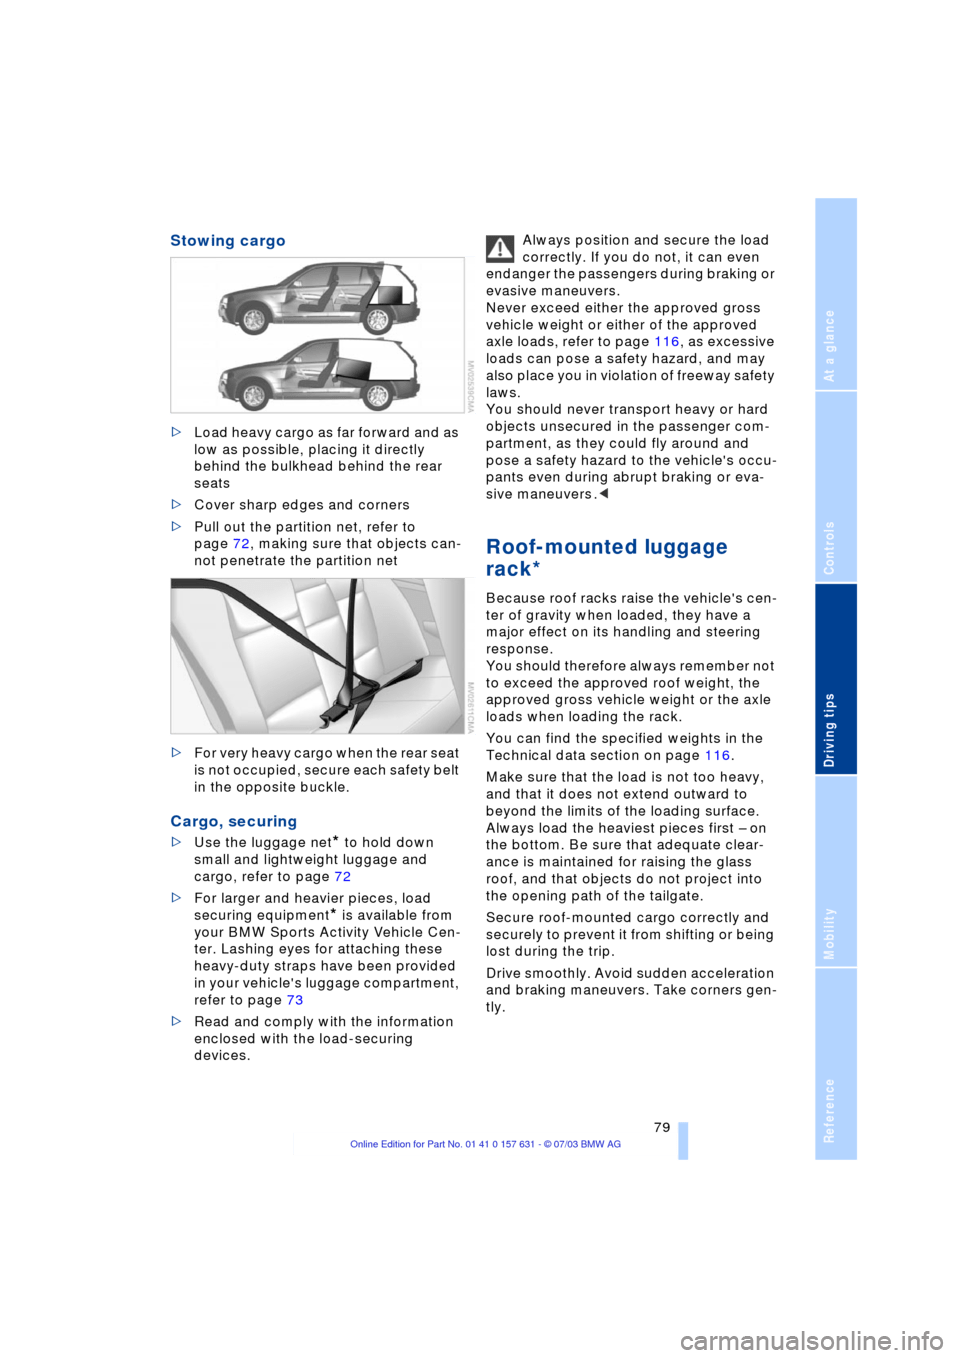 BMW X3 2.5I 2004 E83 Owner's Manual